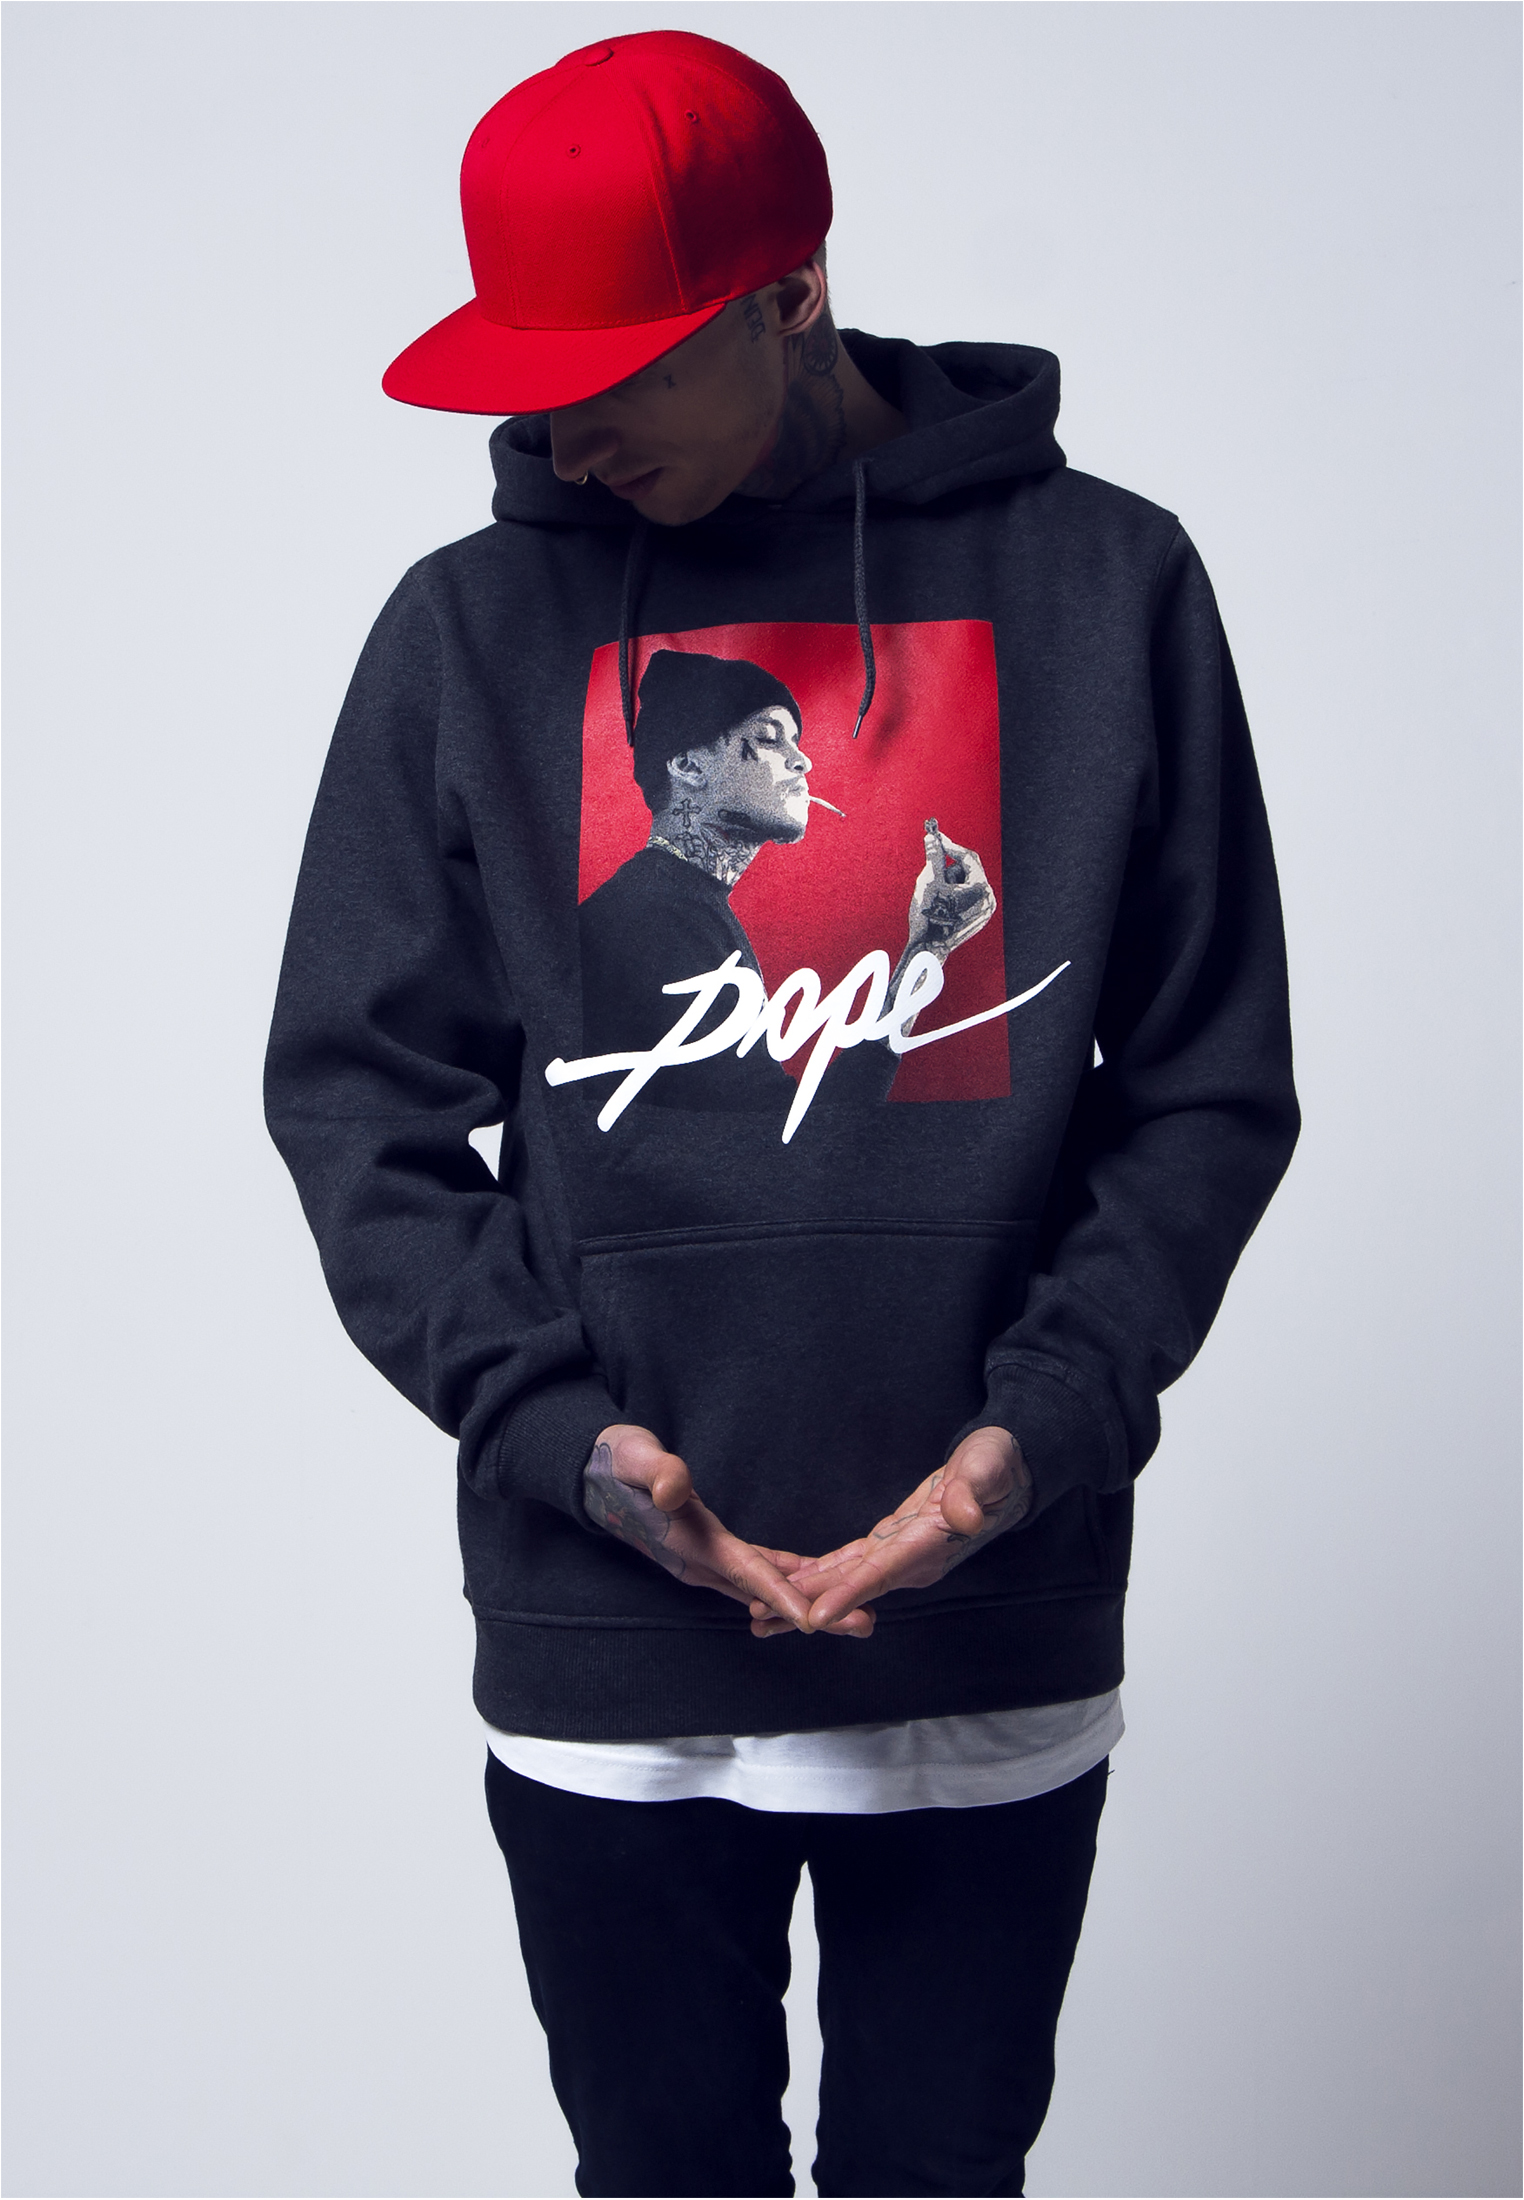 streetwear fashion online shop mister tee dope hoody. Black Bedroom Furniture Sets. Home Design Ideas